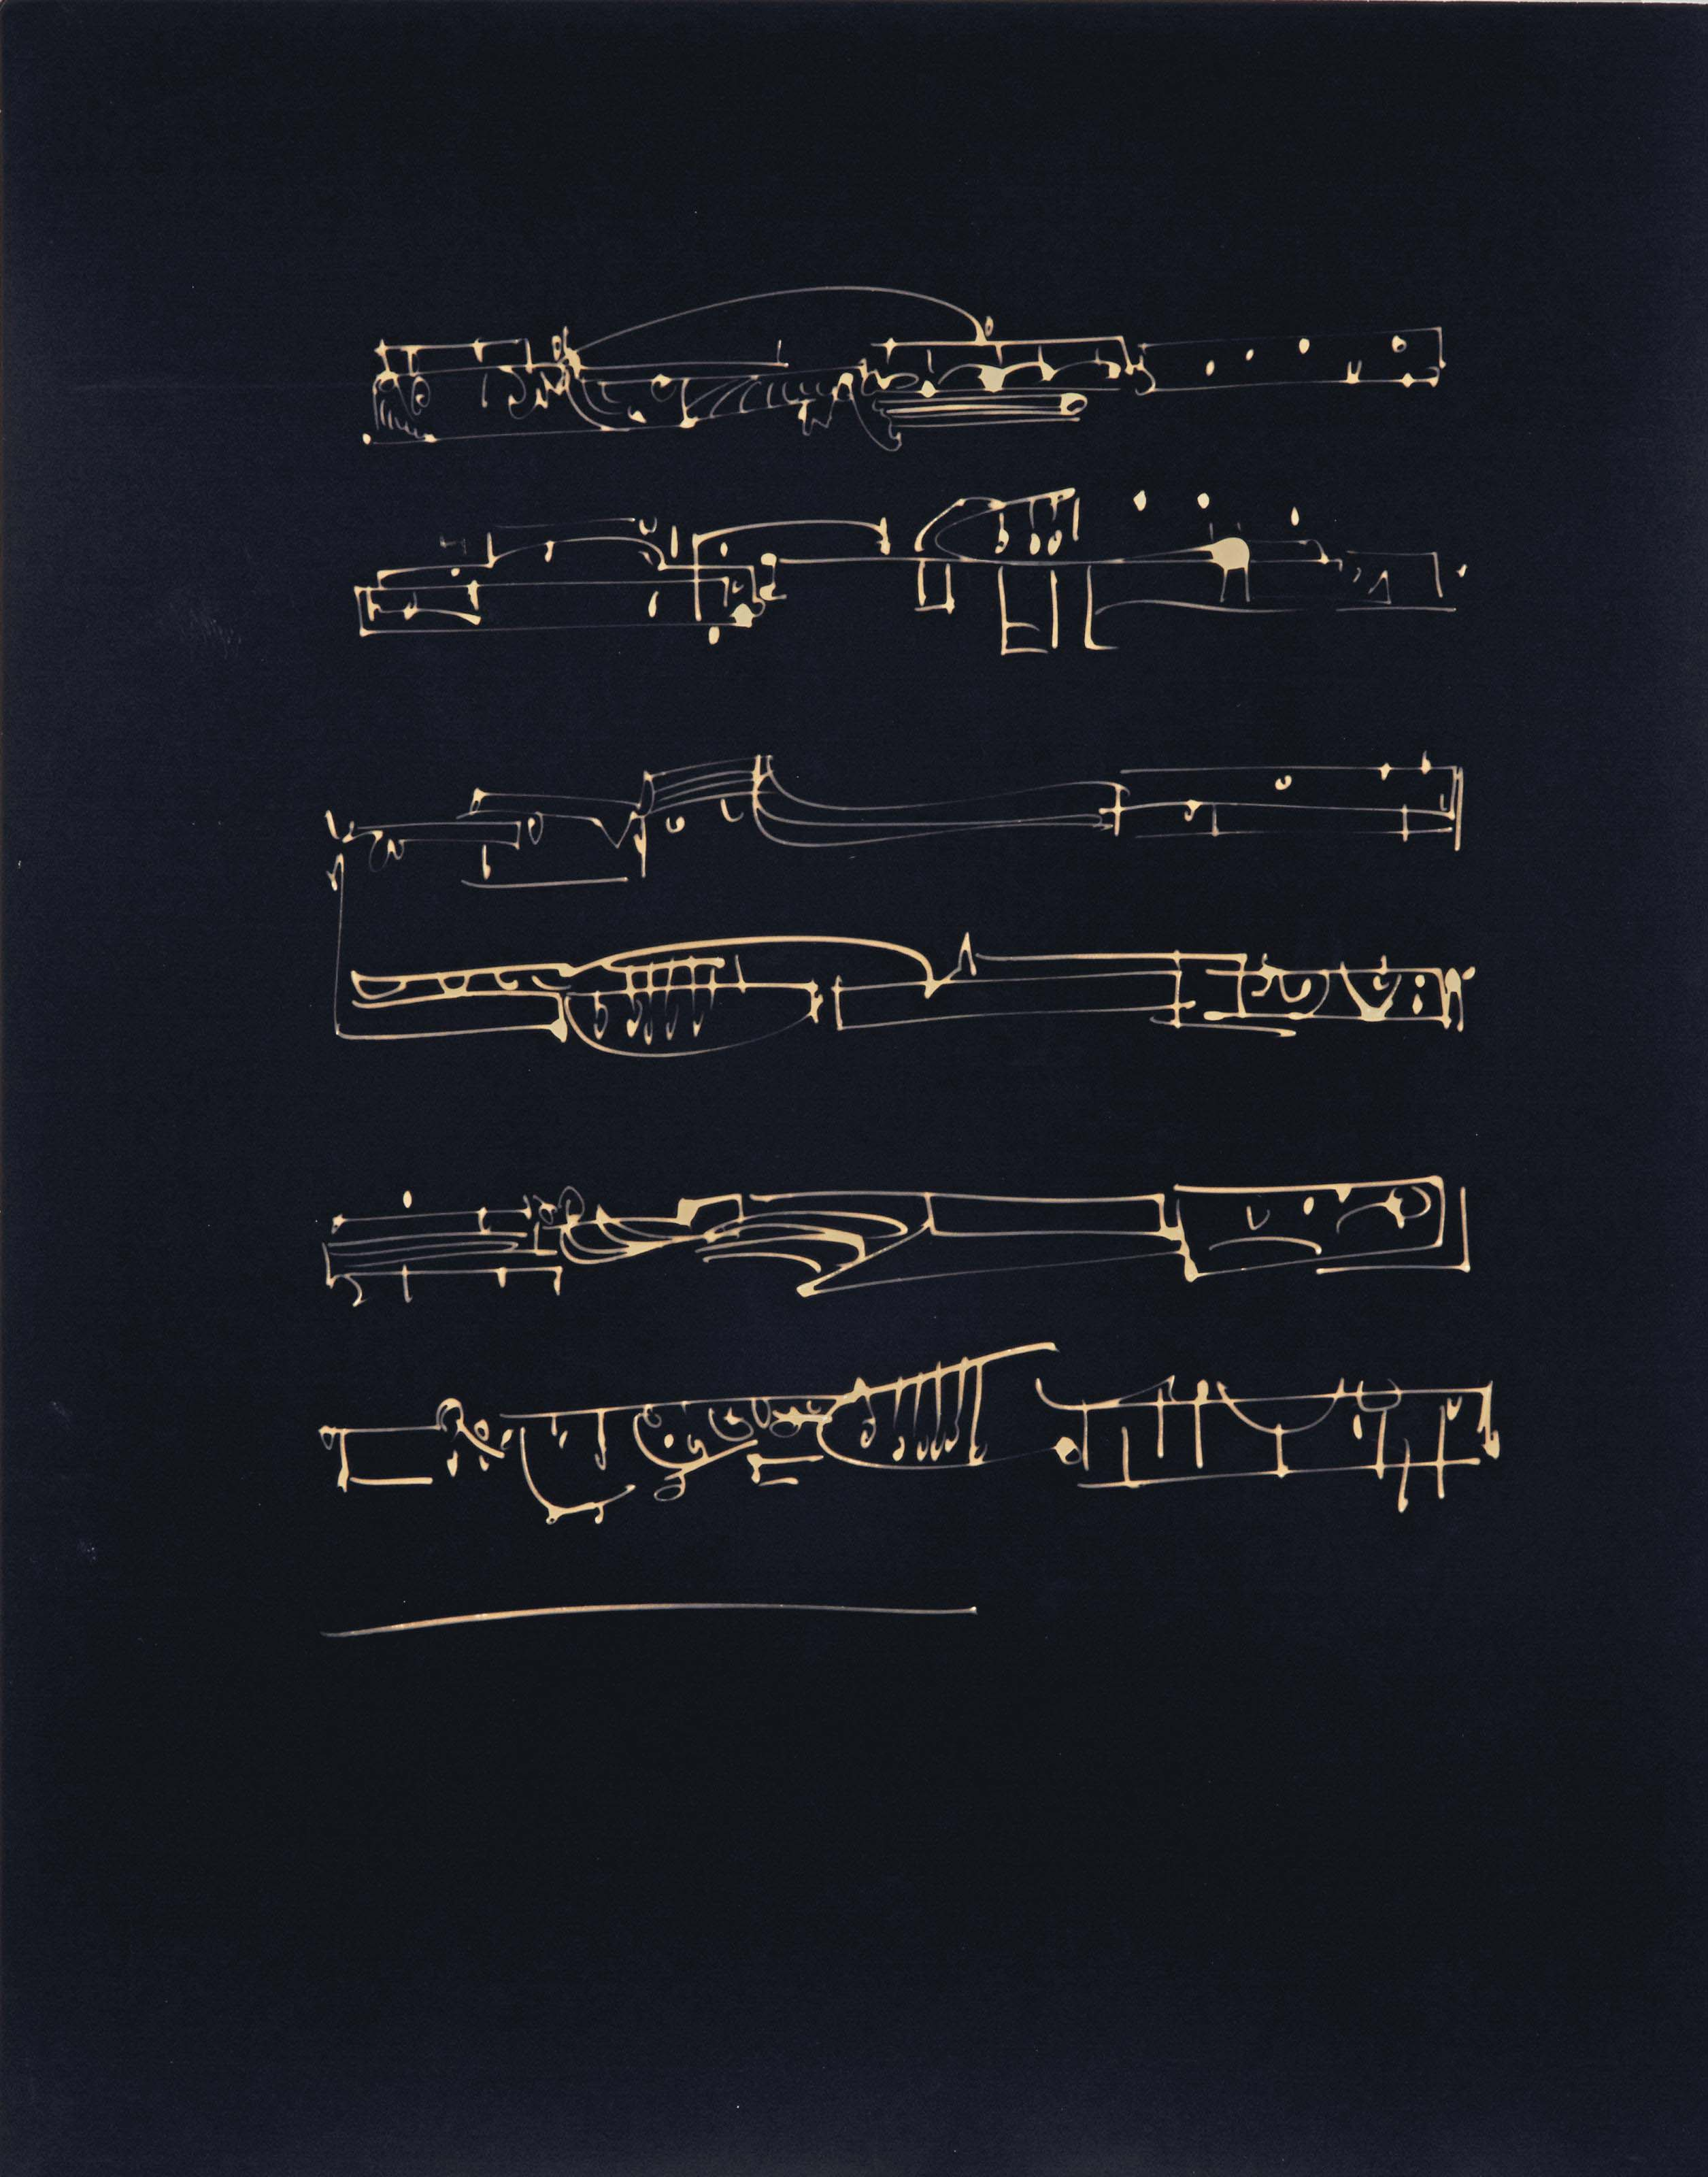 Untitled, vers 1960